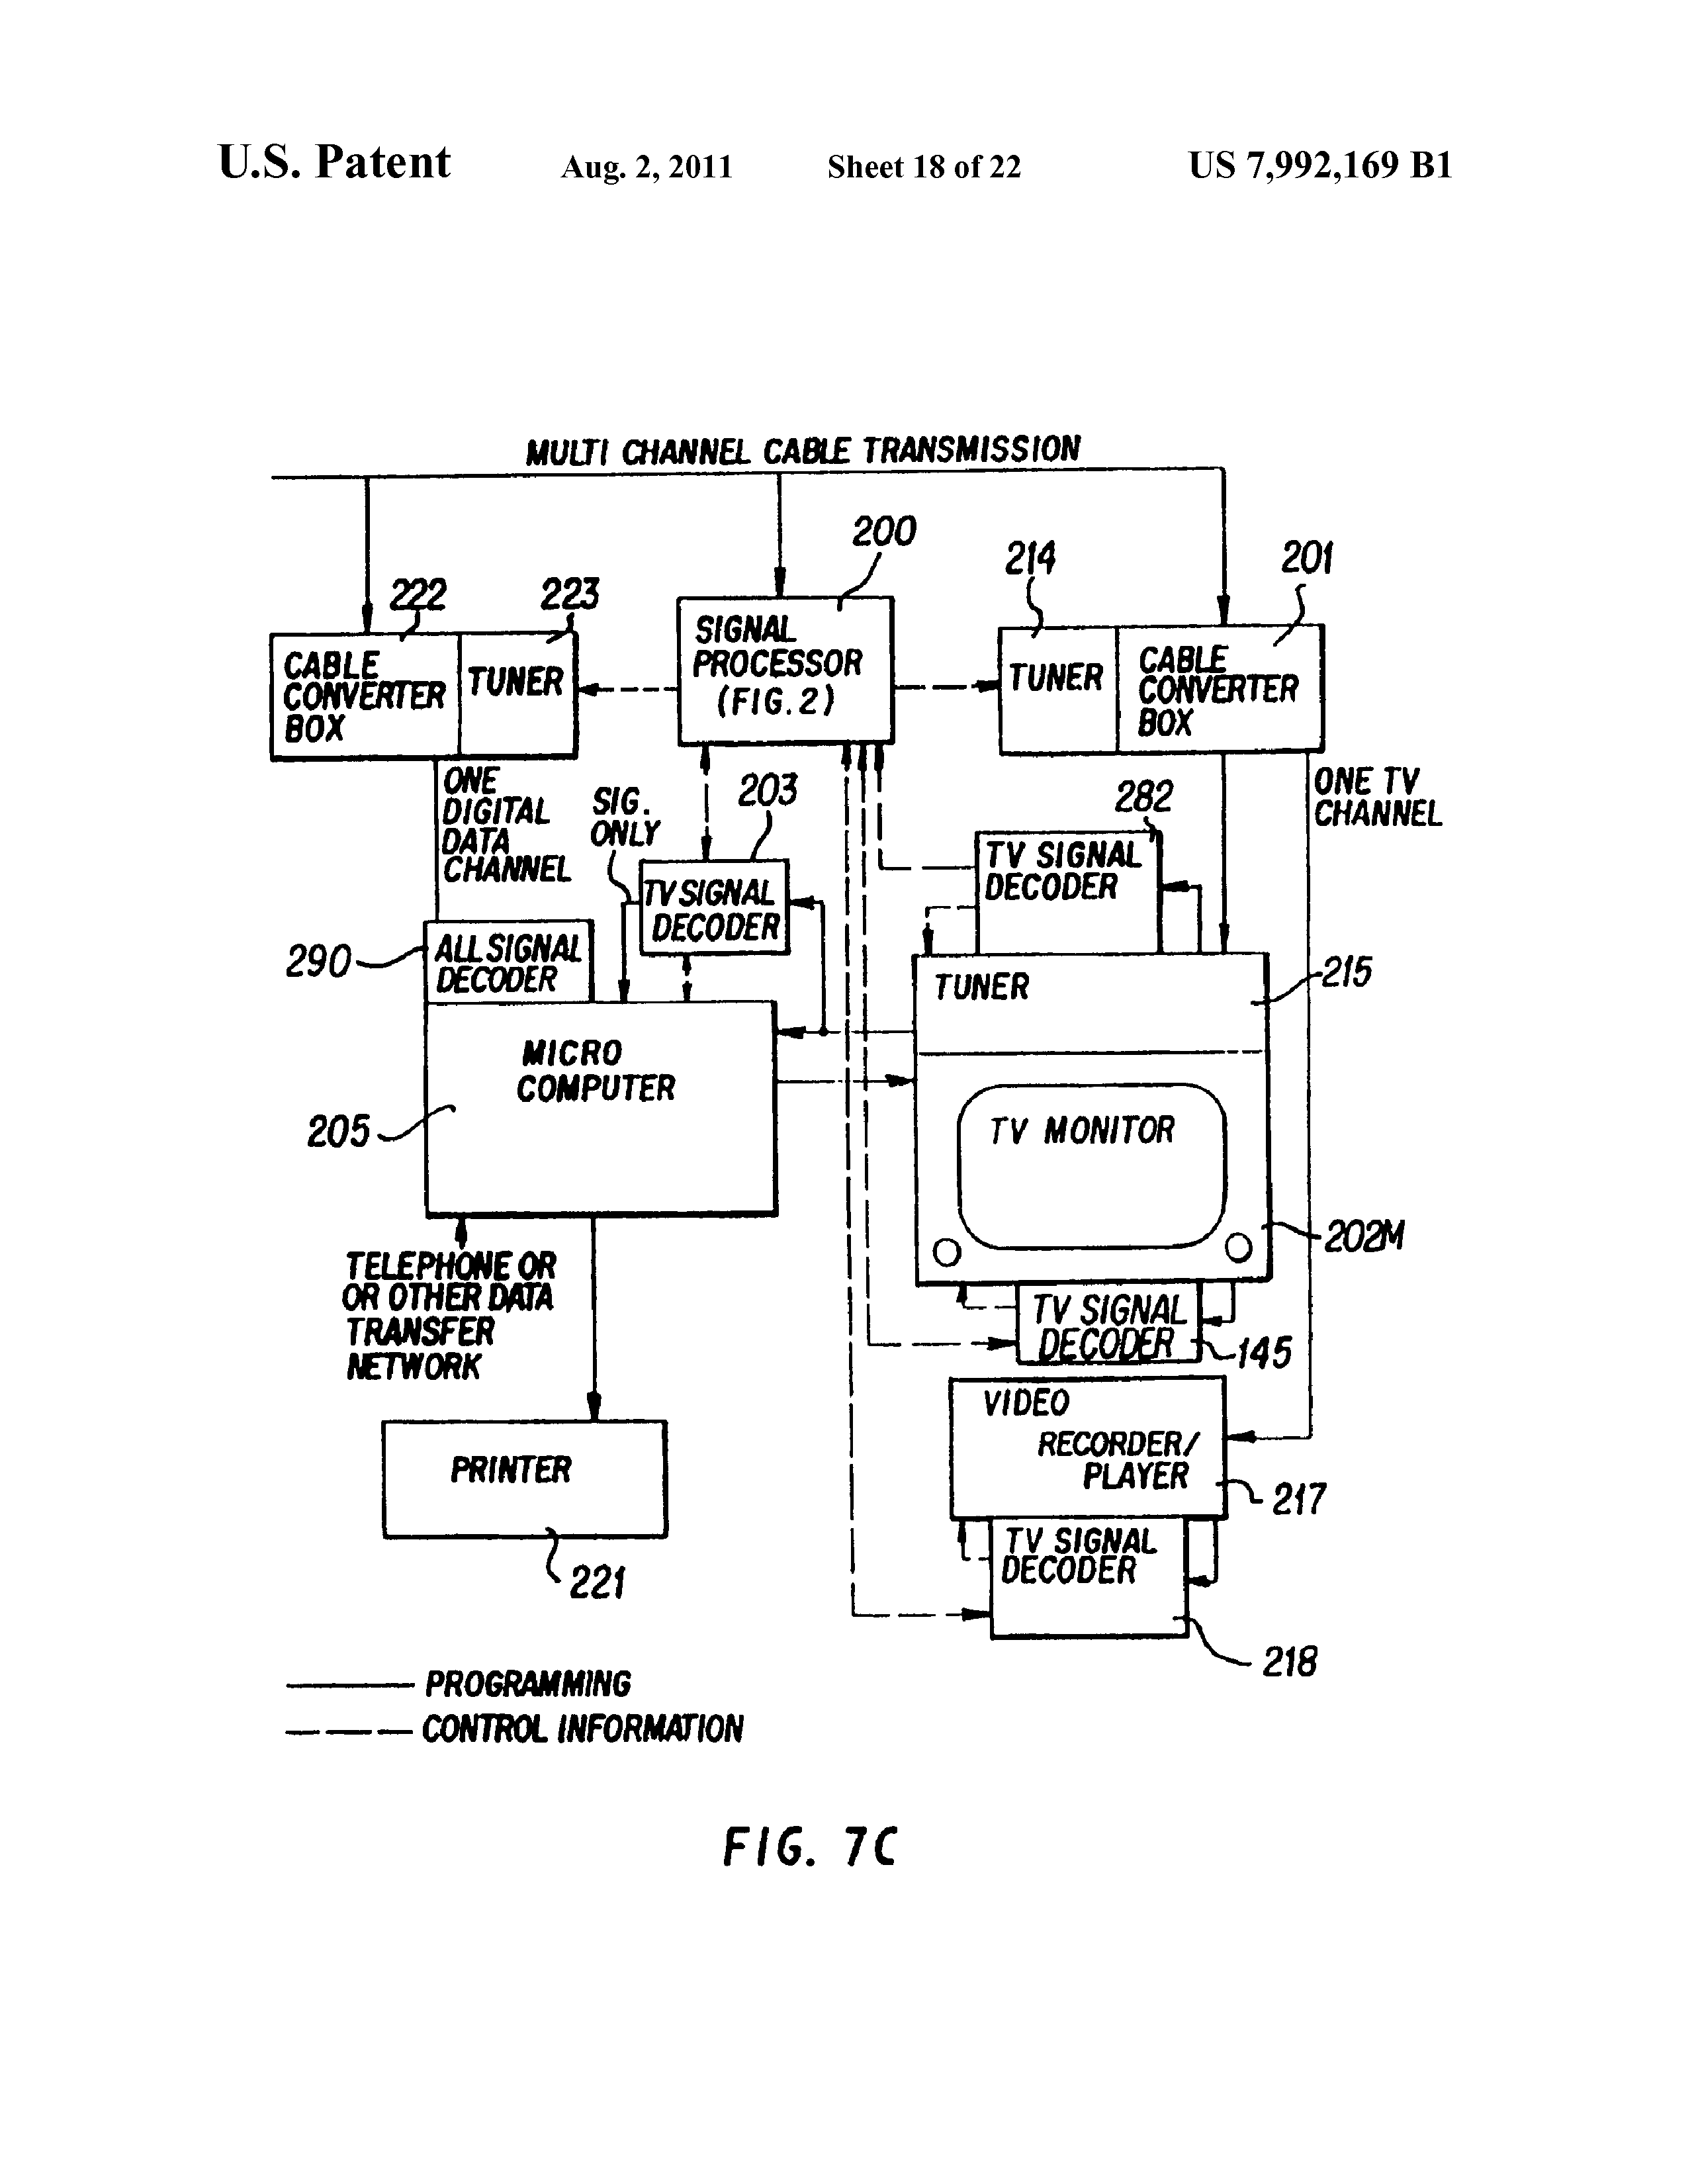 us7992169b1 signal processing apparatus and methods patents Objective Statement for Resume